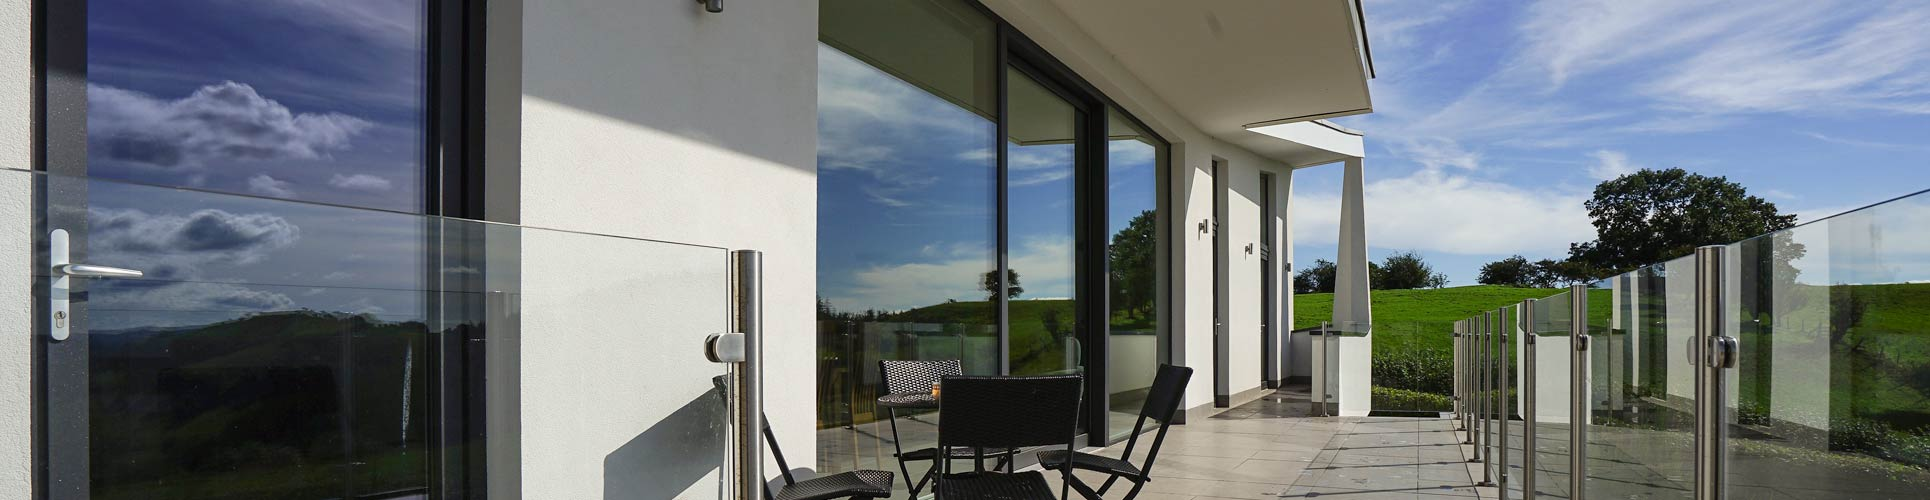 Aluminium Sliding Doors, eco build Rest On The Hill Oswestry, UK.